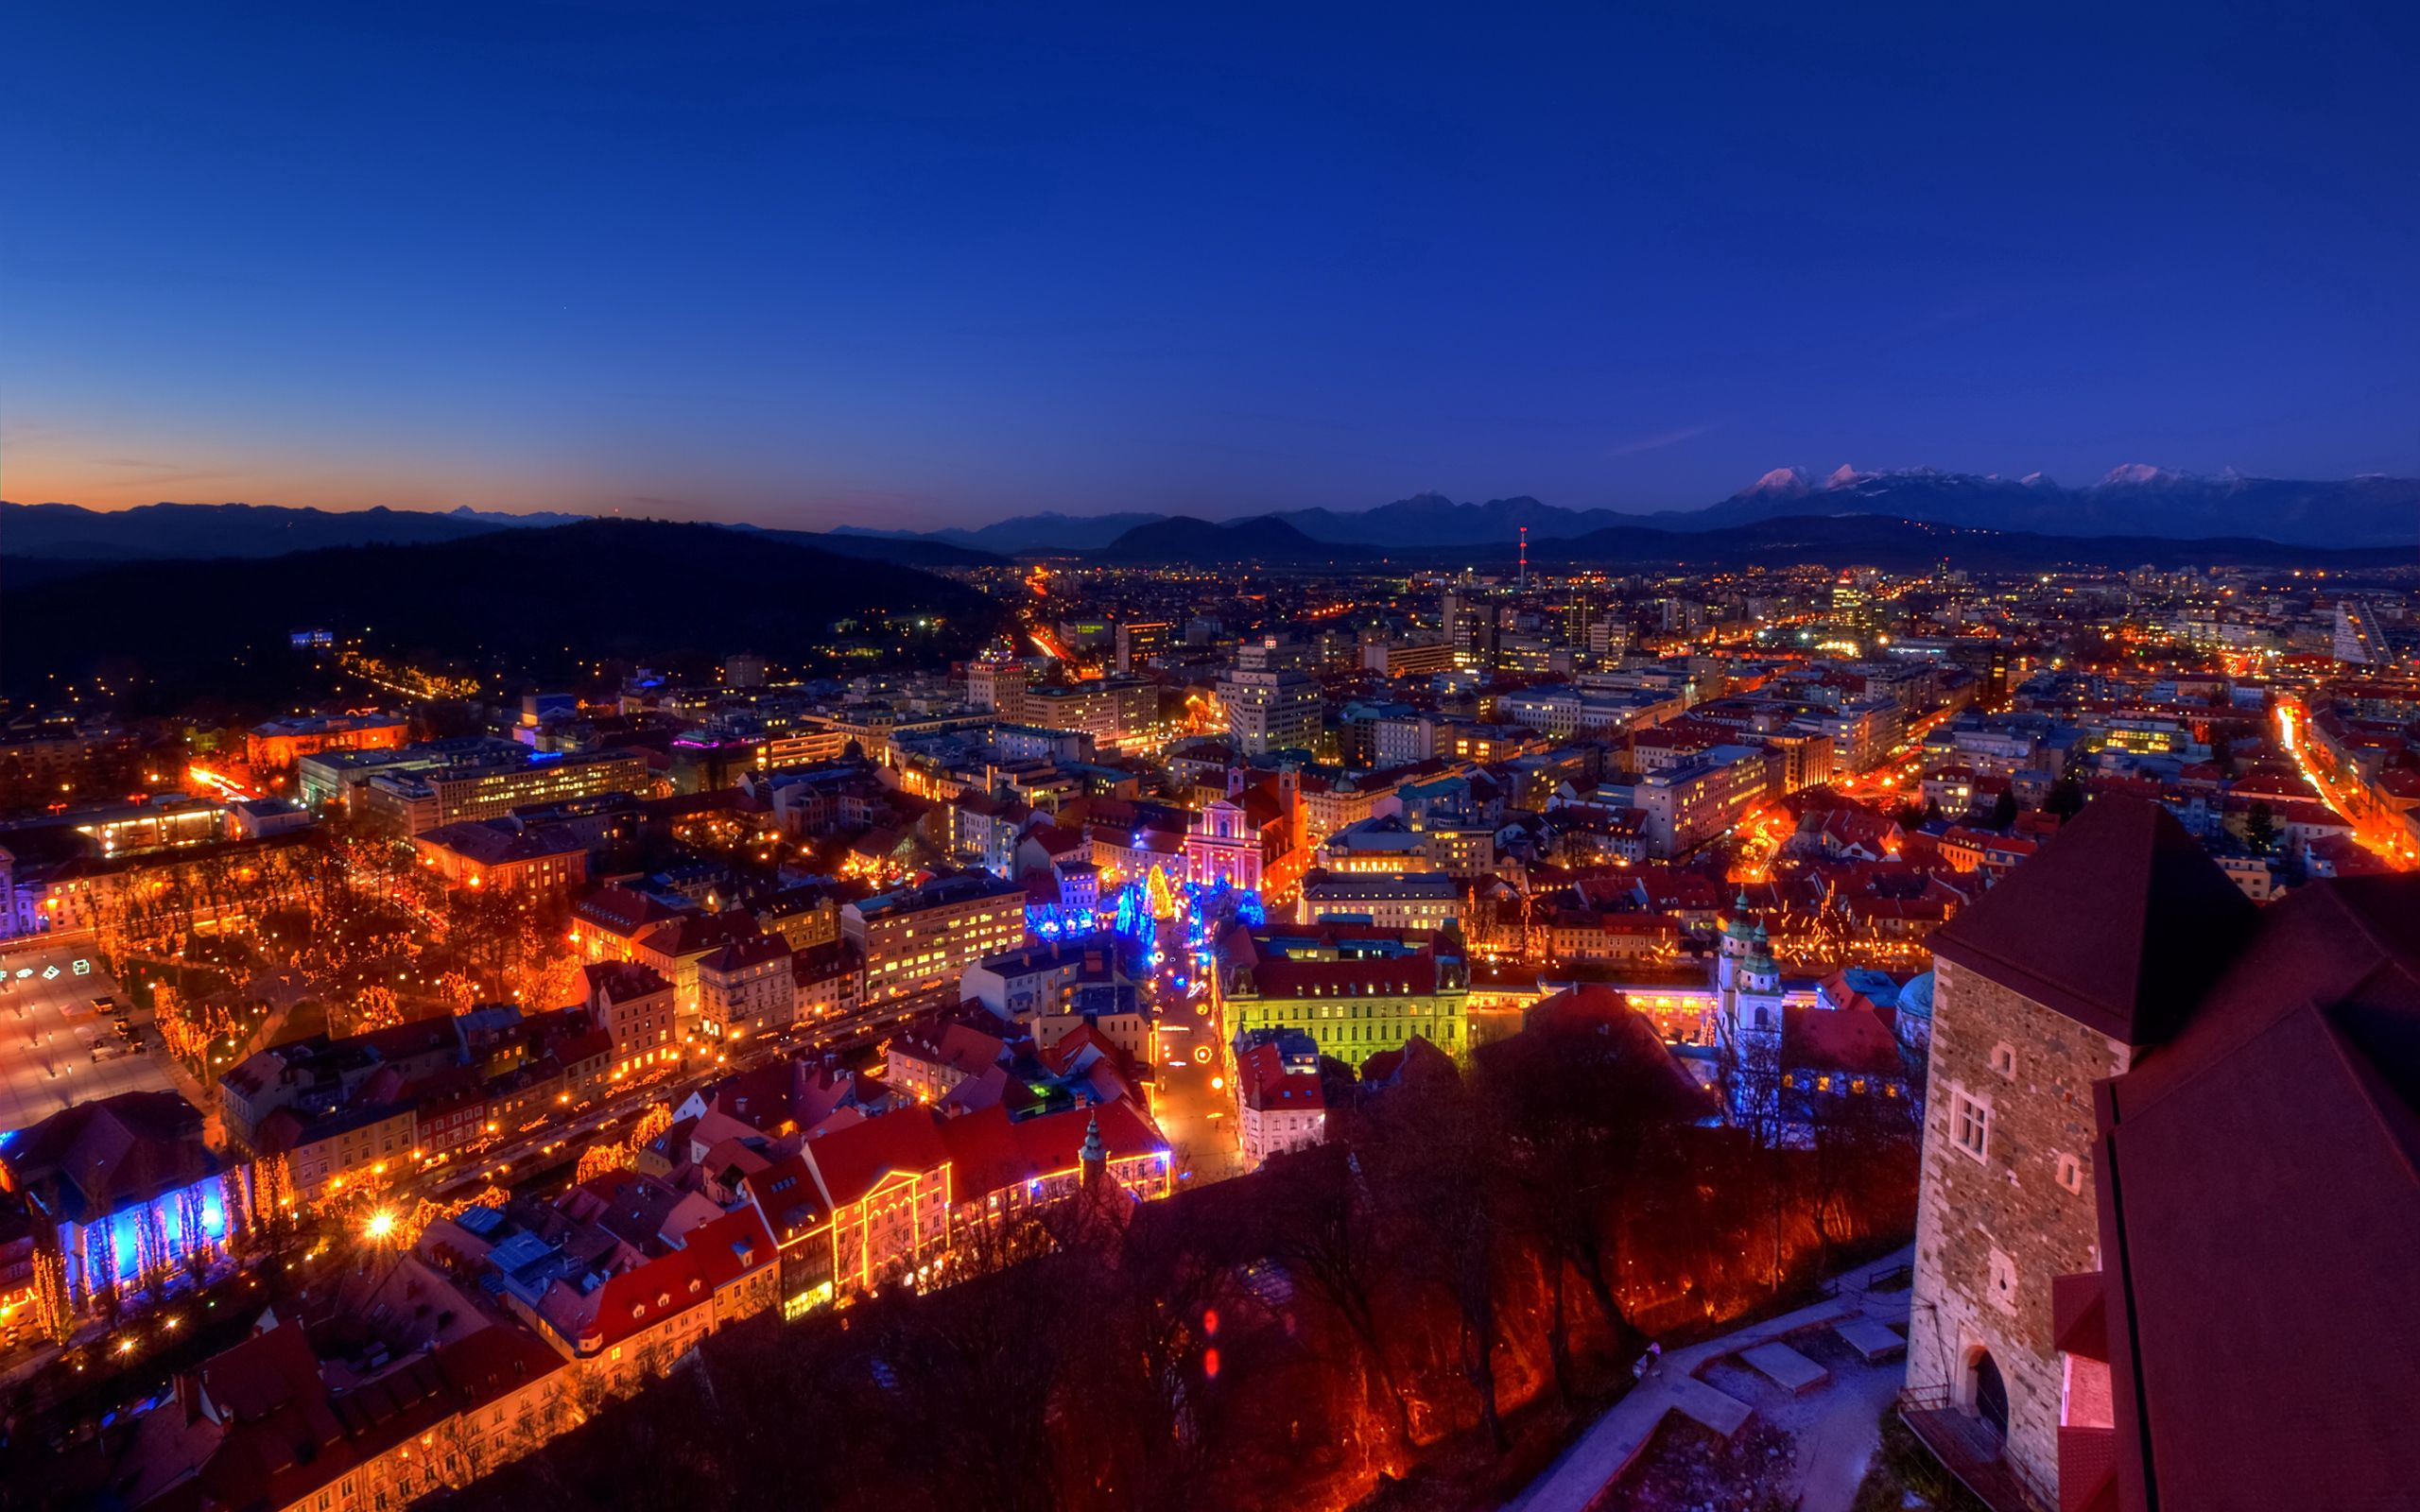 133739 Screensavers and Wallpapers Lock for phone. Download Cities, Houses, Mountains, Twilight, Lock, Lights, Christmas, Alps, Dusk, Evening, Slovenia pictures for free